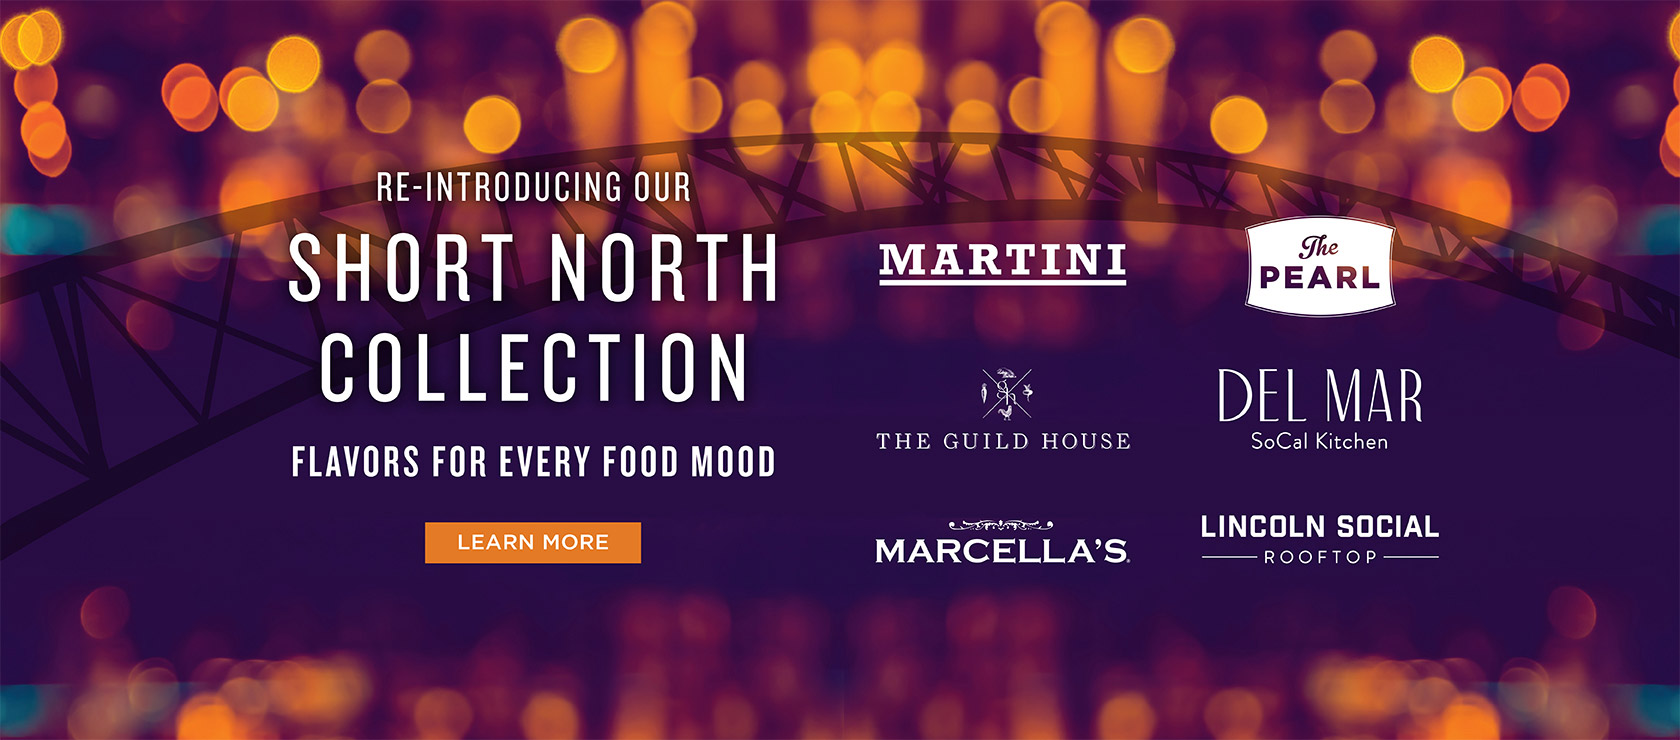 Re-introducing our Short North Collection. Flavors for every food mood. Learn More.